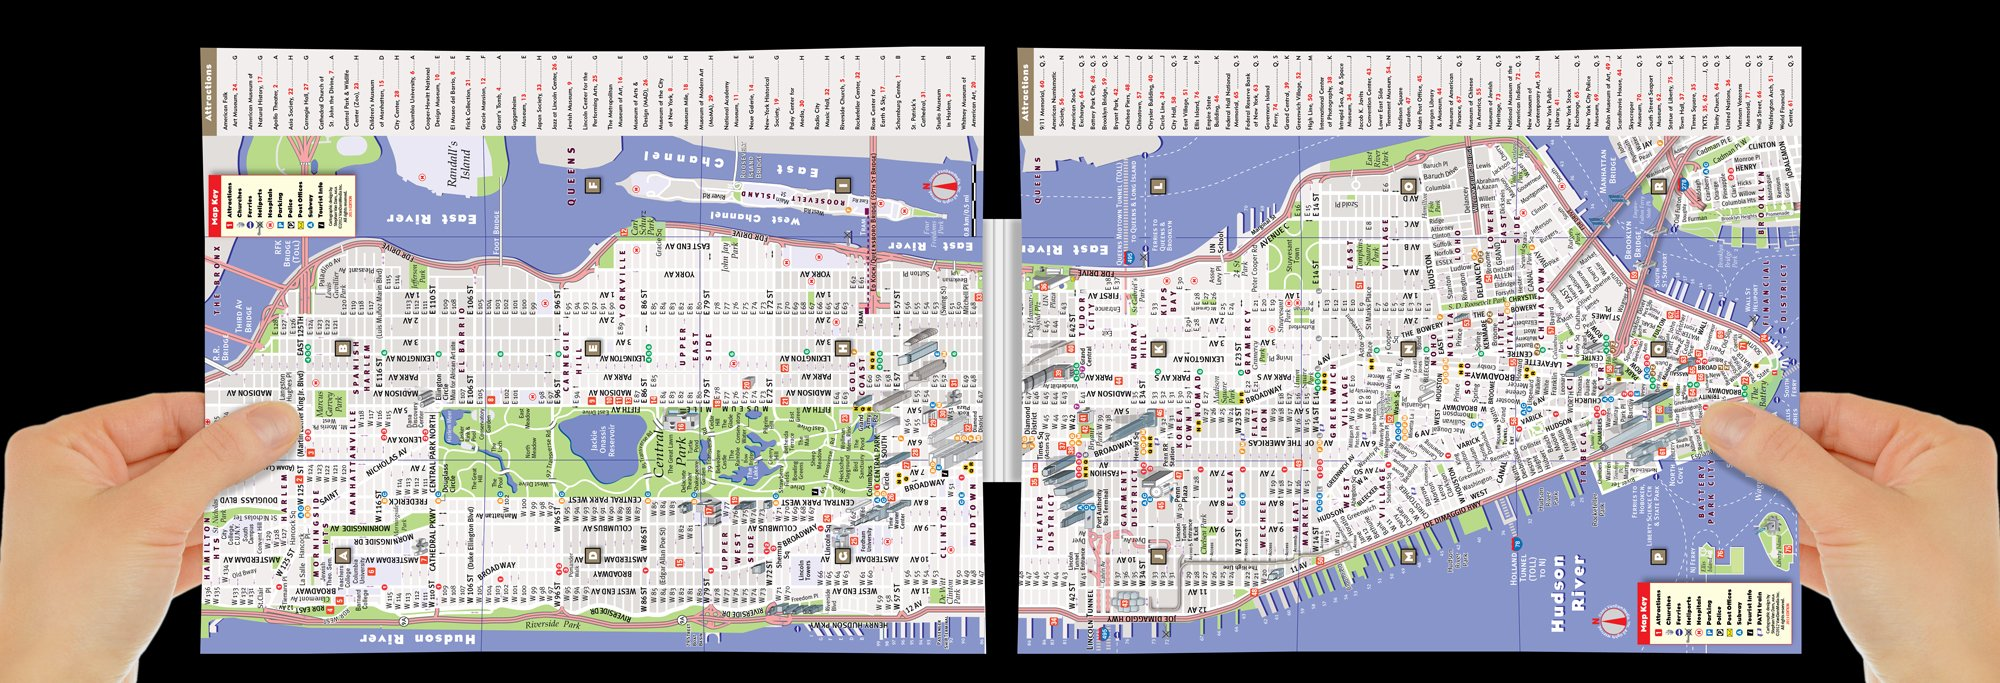 Street Map Of New York City.Pop Up Nyc Map By Vandam City Street Map Of New York City New